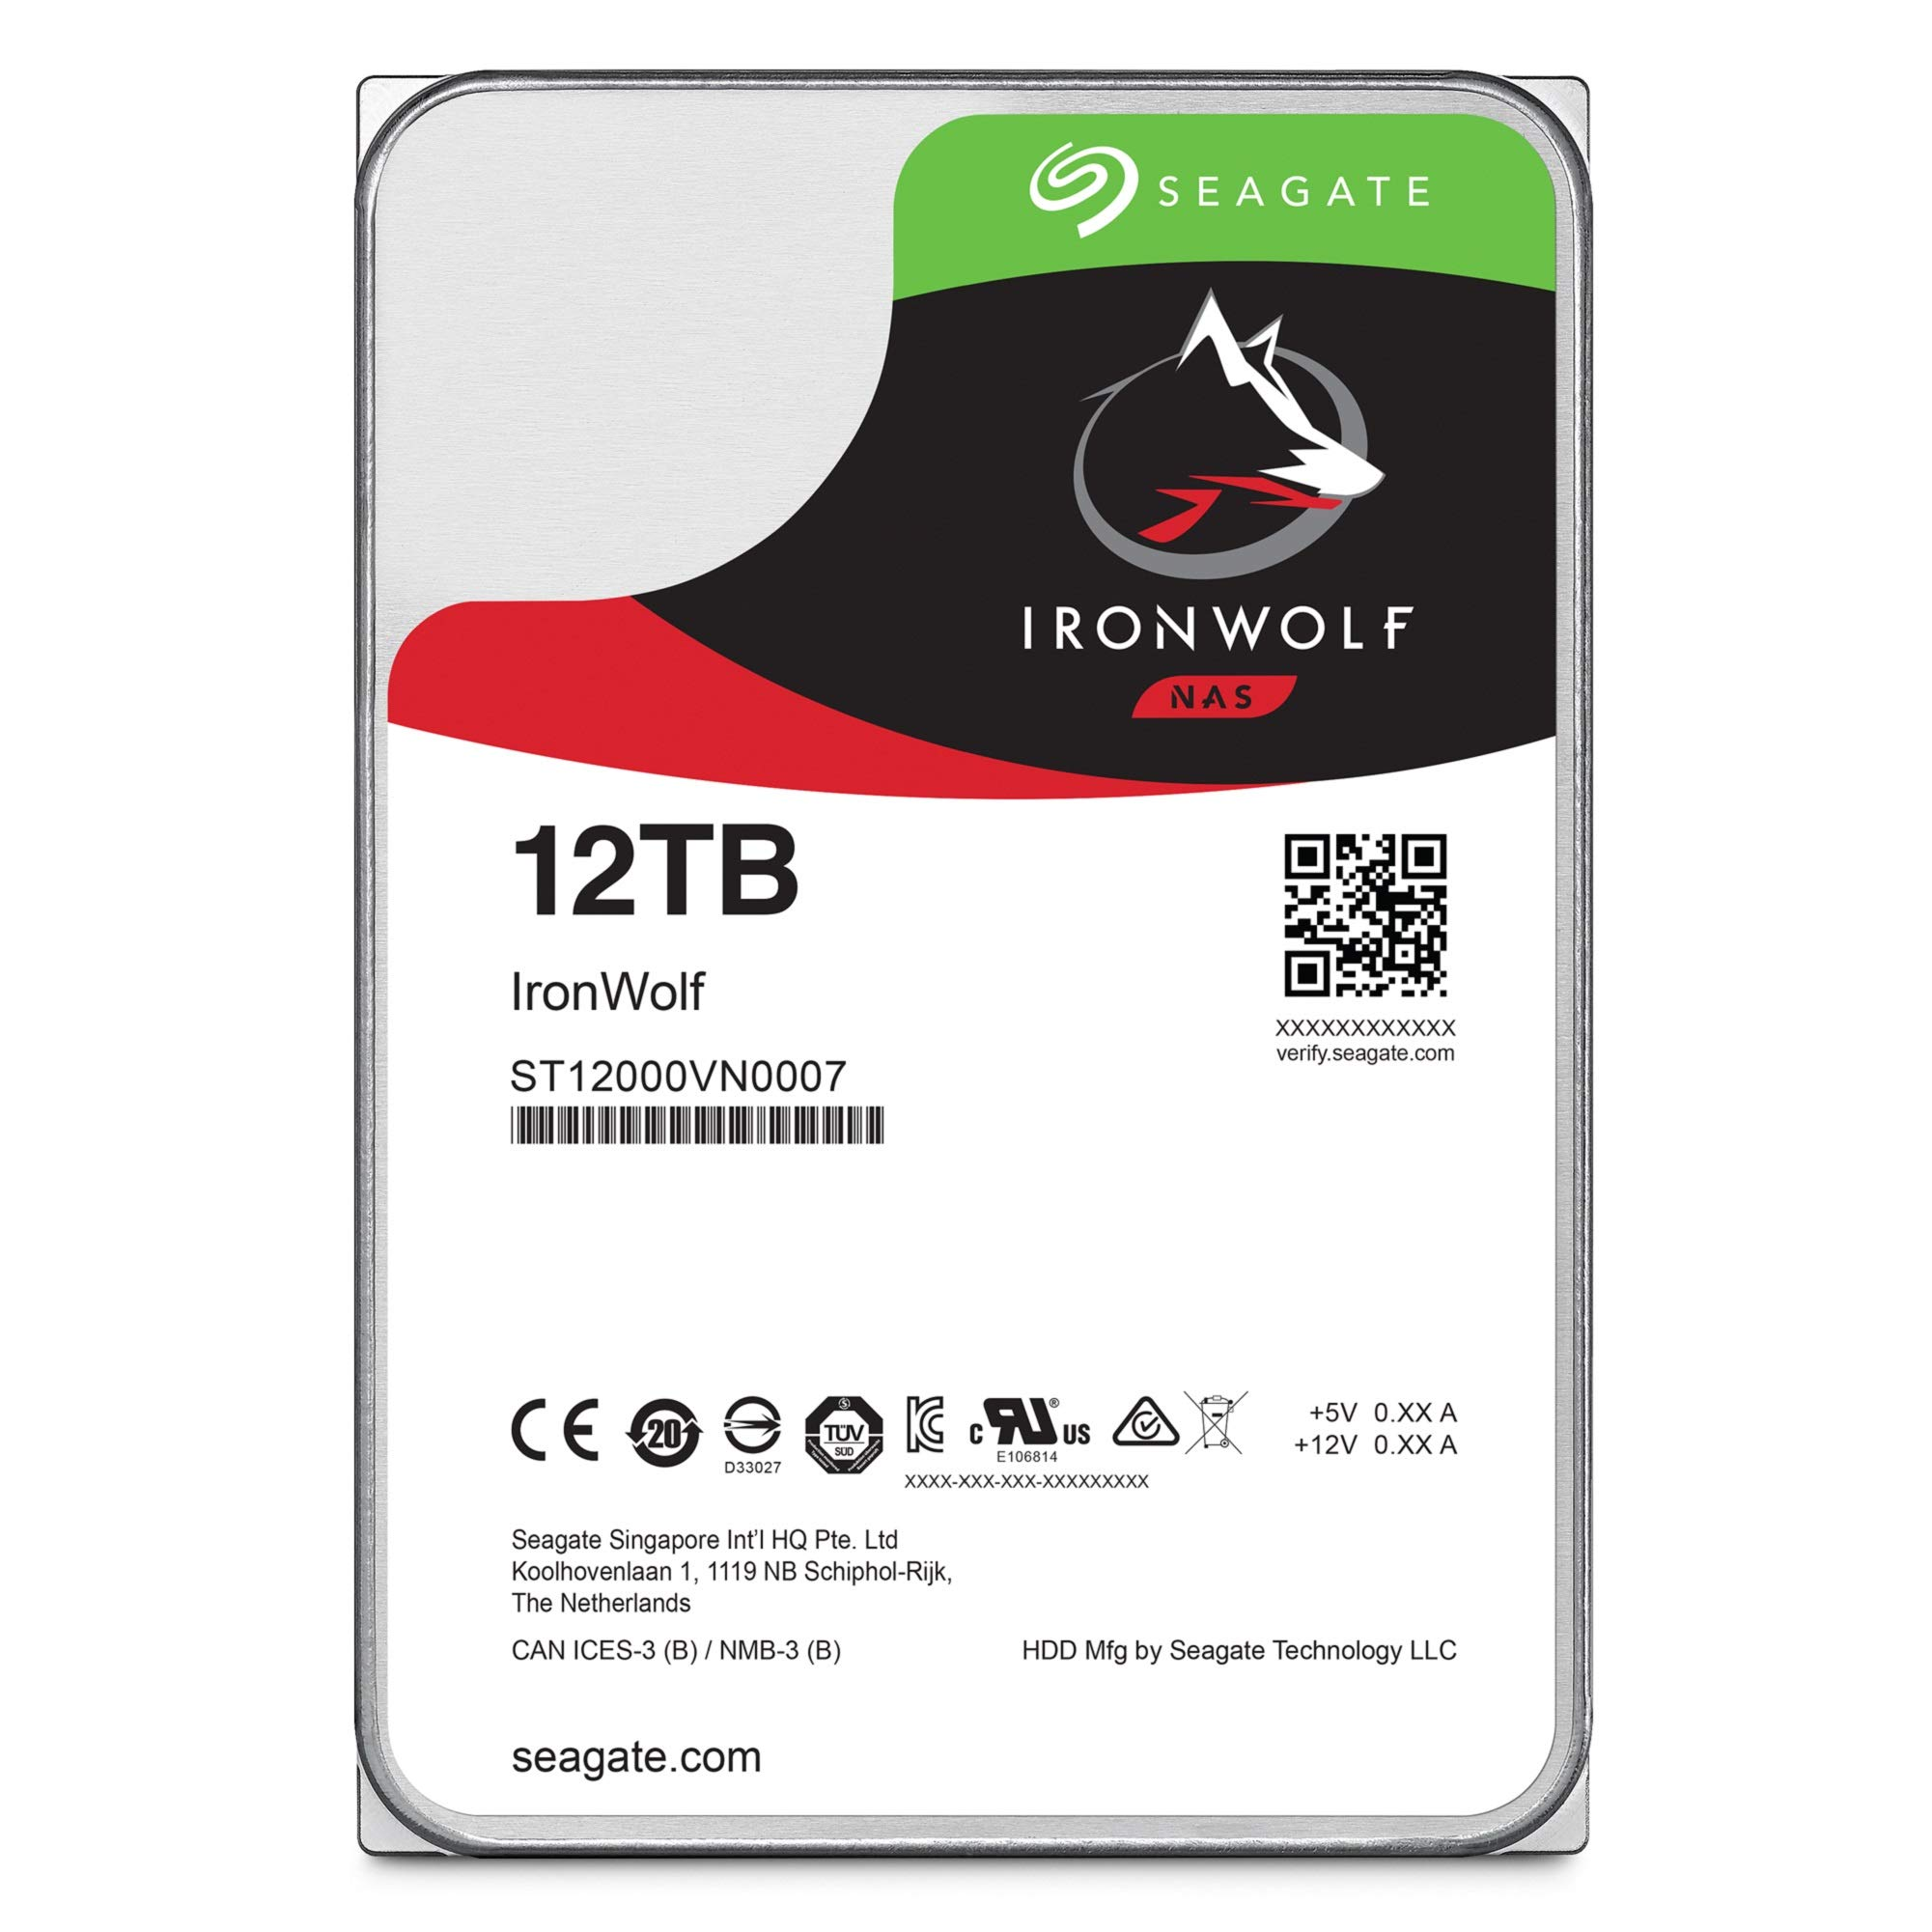 Seagate IronWolf 12TB NAS Internal Hard Drive HDD - 3.5 Inch SATA 6Gb/s 7200 RPM 256MB Cache for RAID Network Attached Storage (ST12000VN0007) by Seagate (Image #2)